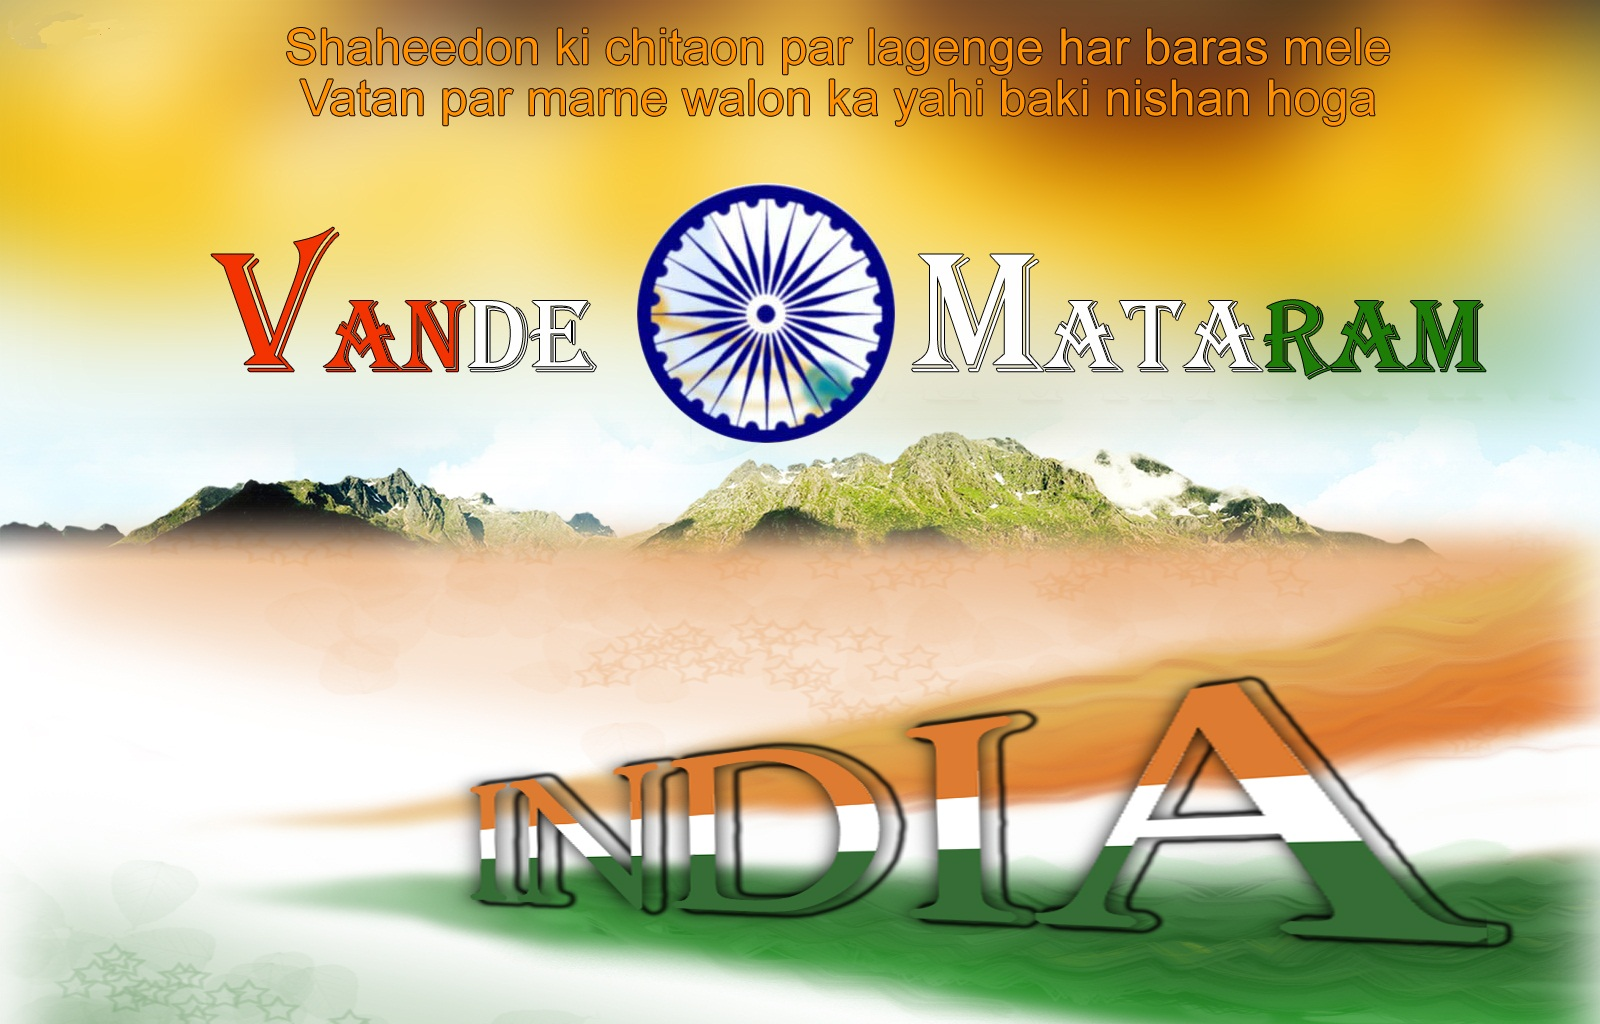 Independence day 2012 greetings wallpapers 321 latest news news independence day 2012 greetings wallpapers 321 m4hsunfo